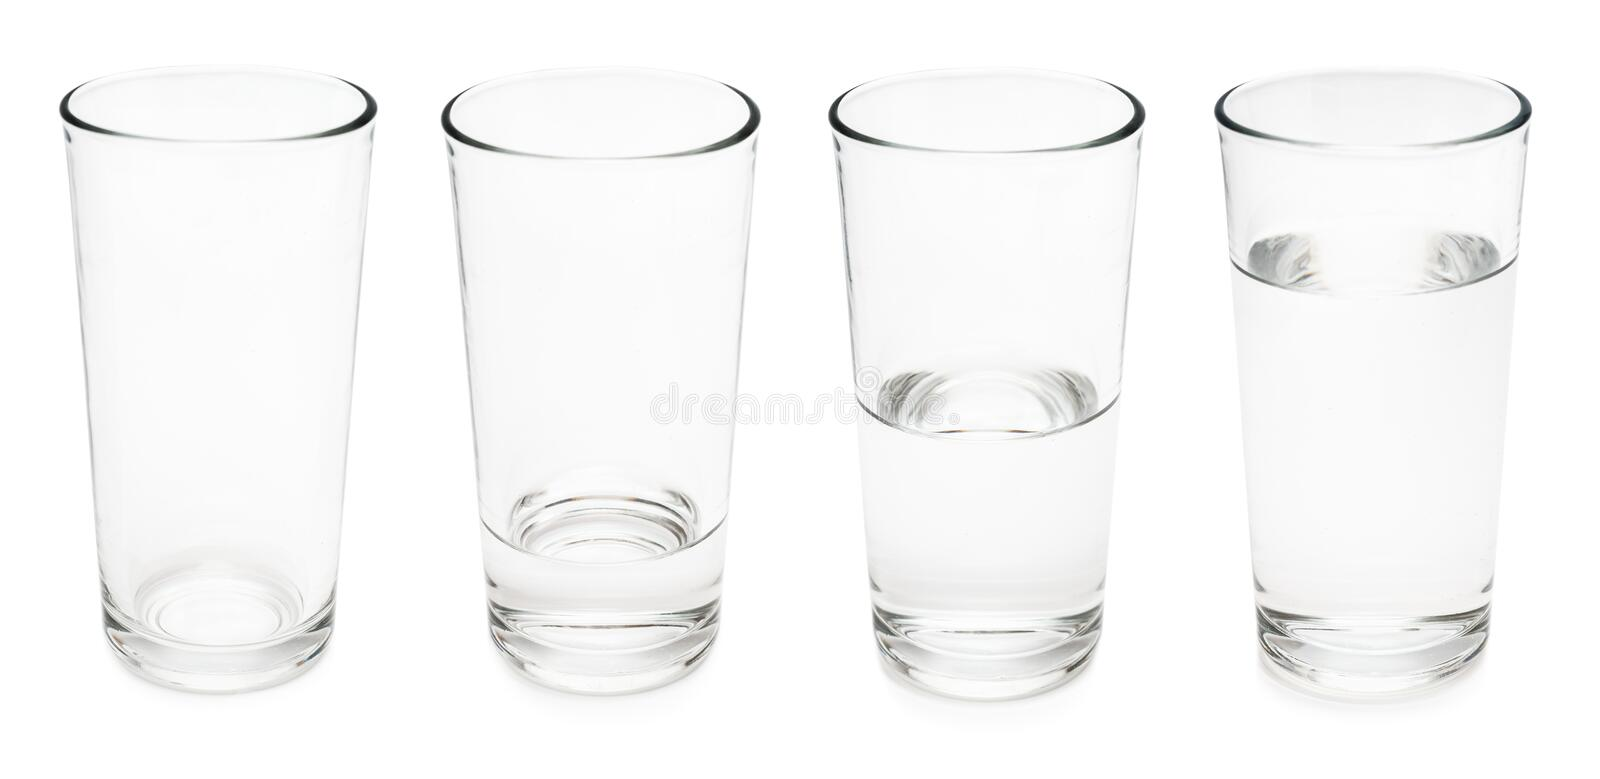 Water glasses stock image